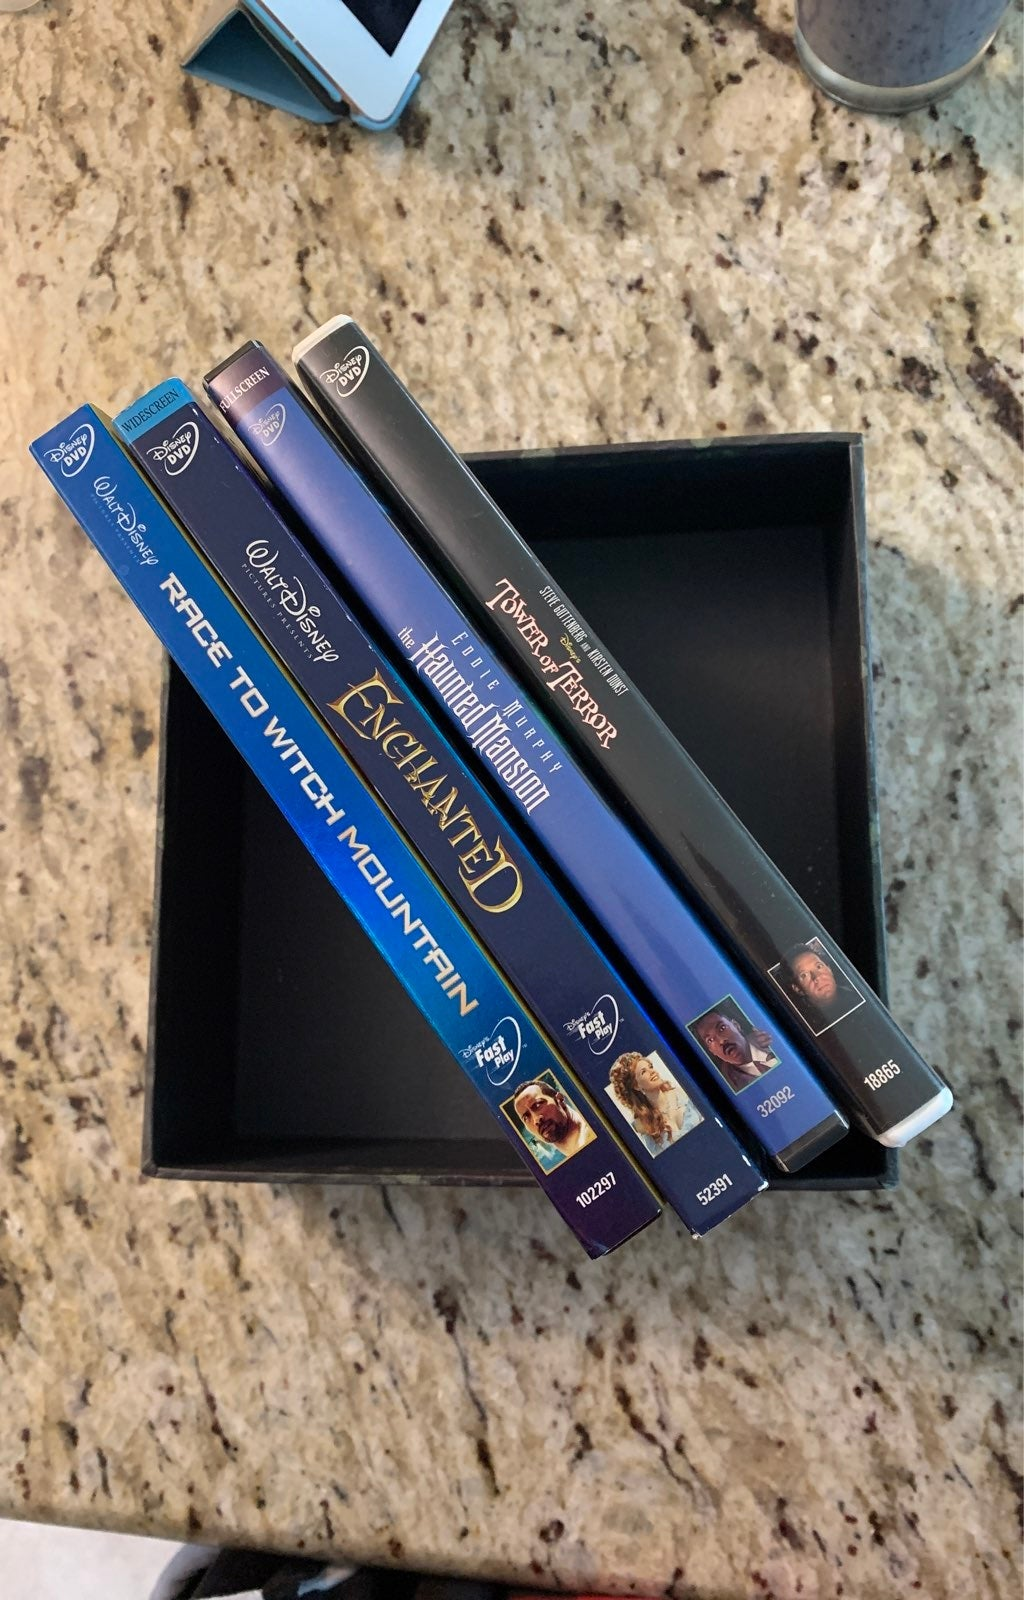 Disney DVD Movie bundle PG